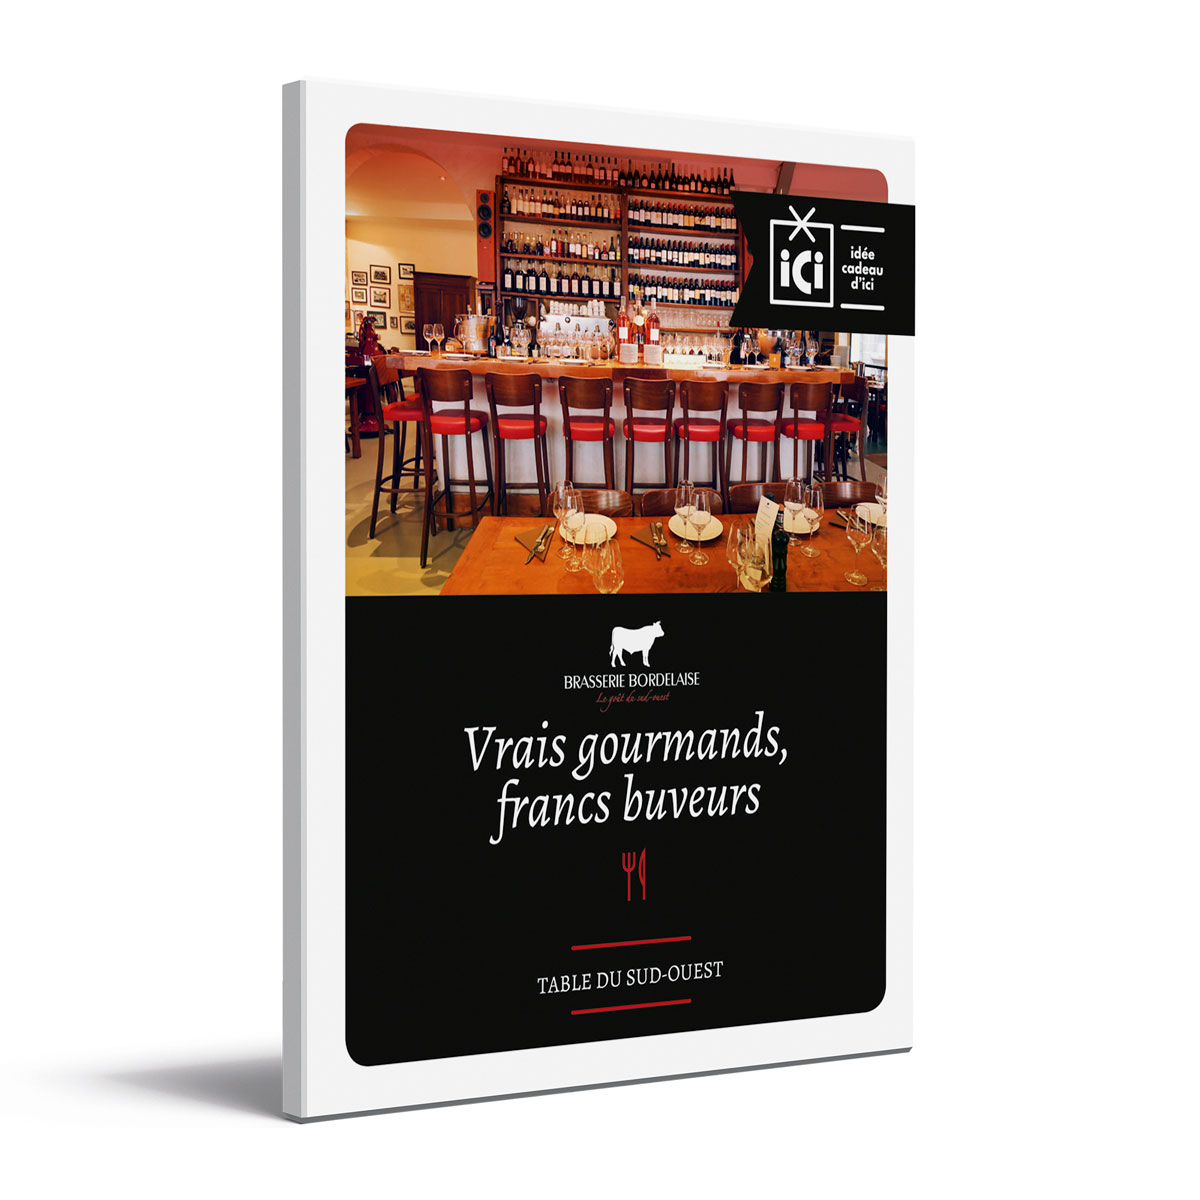 Coffret vrais gourmands, francs buveurs Brasserie Bordelaise recto ombre